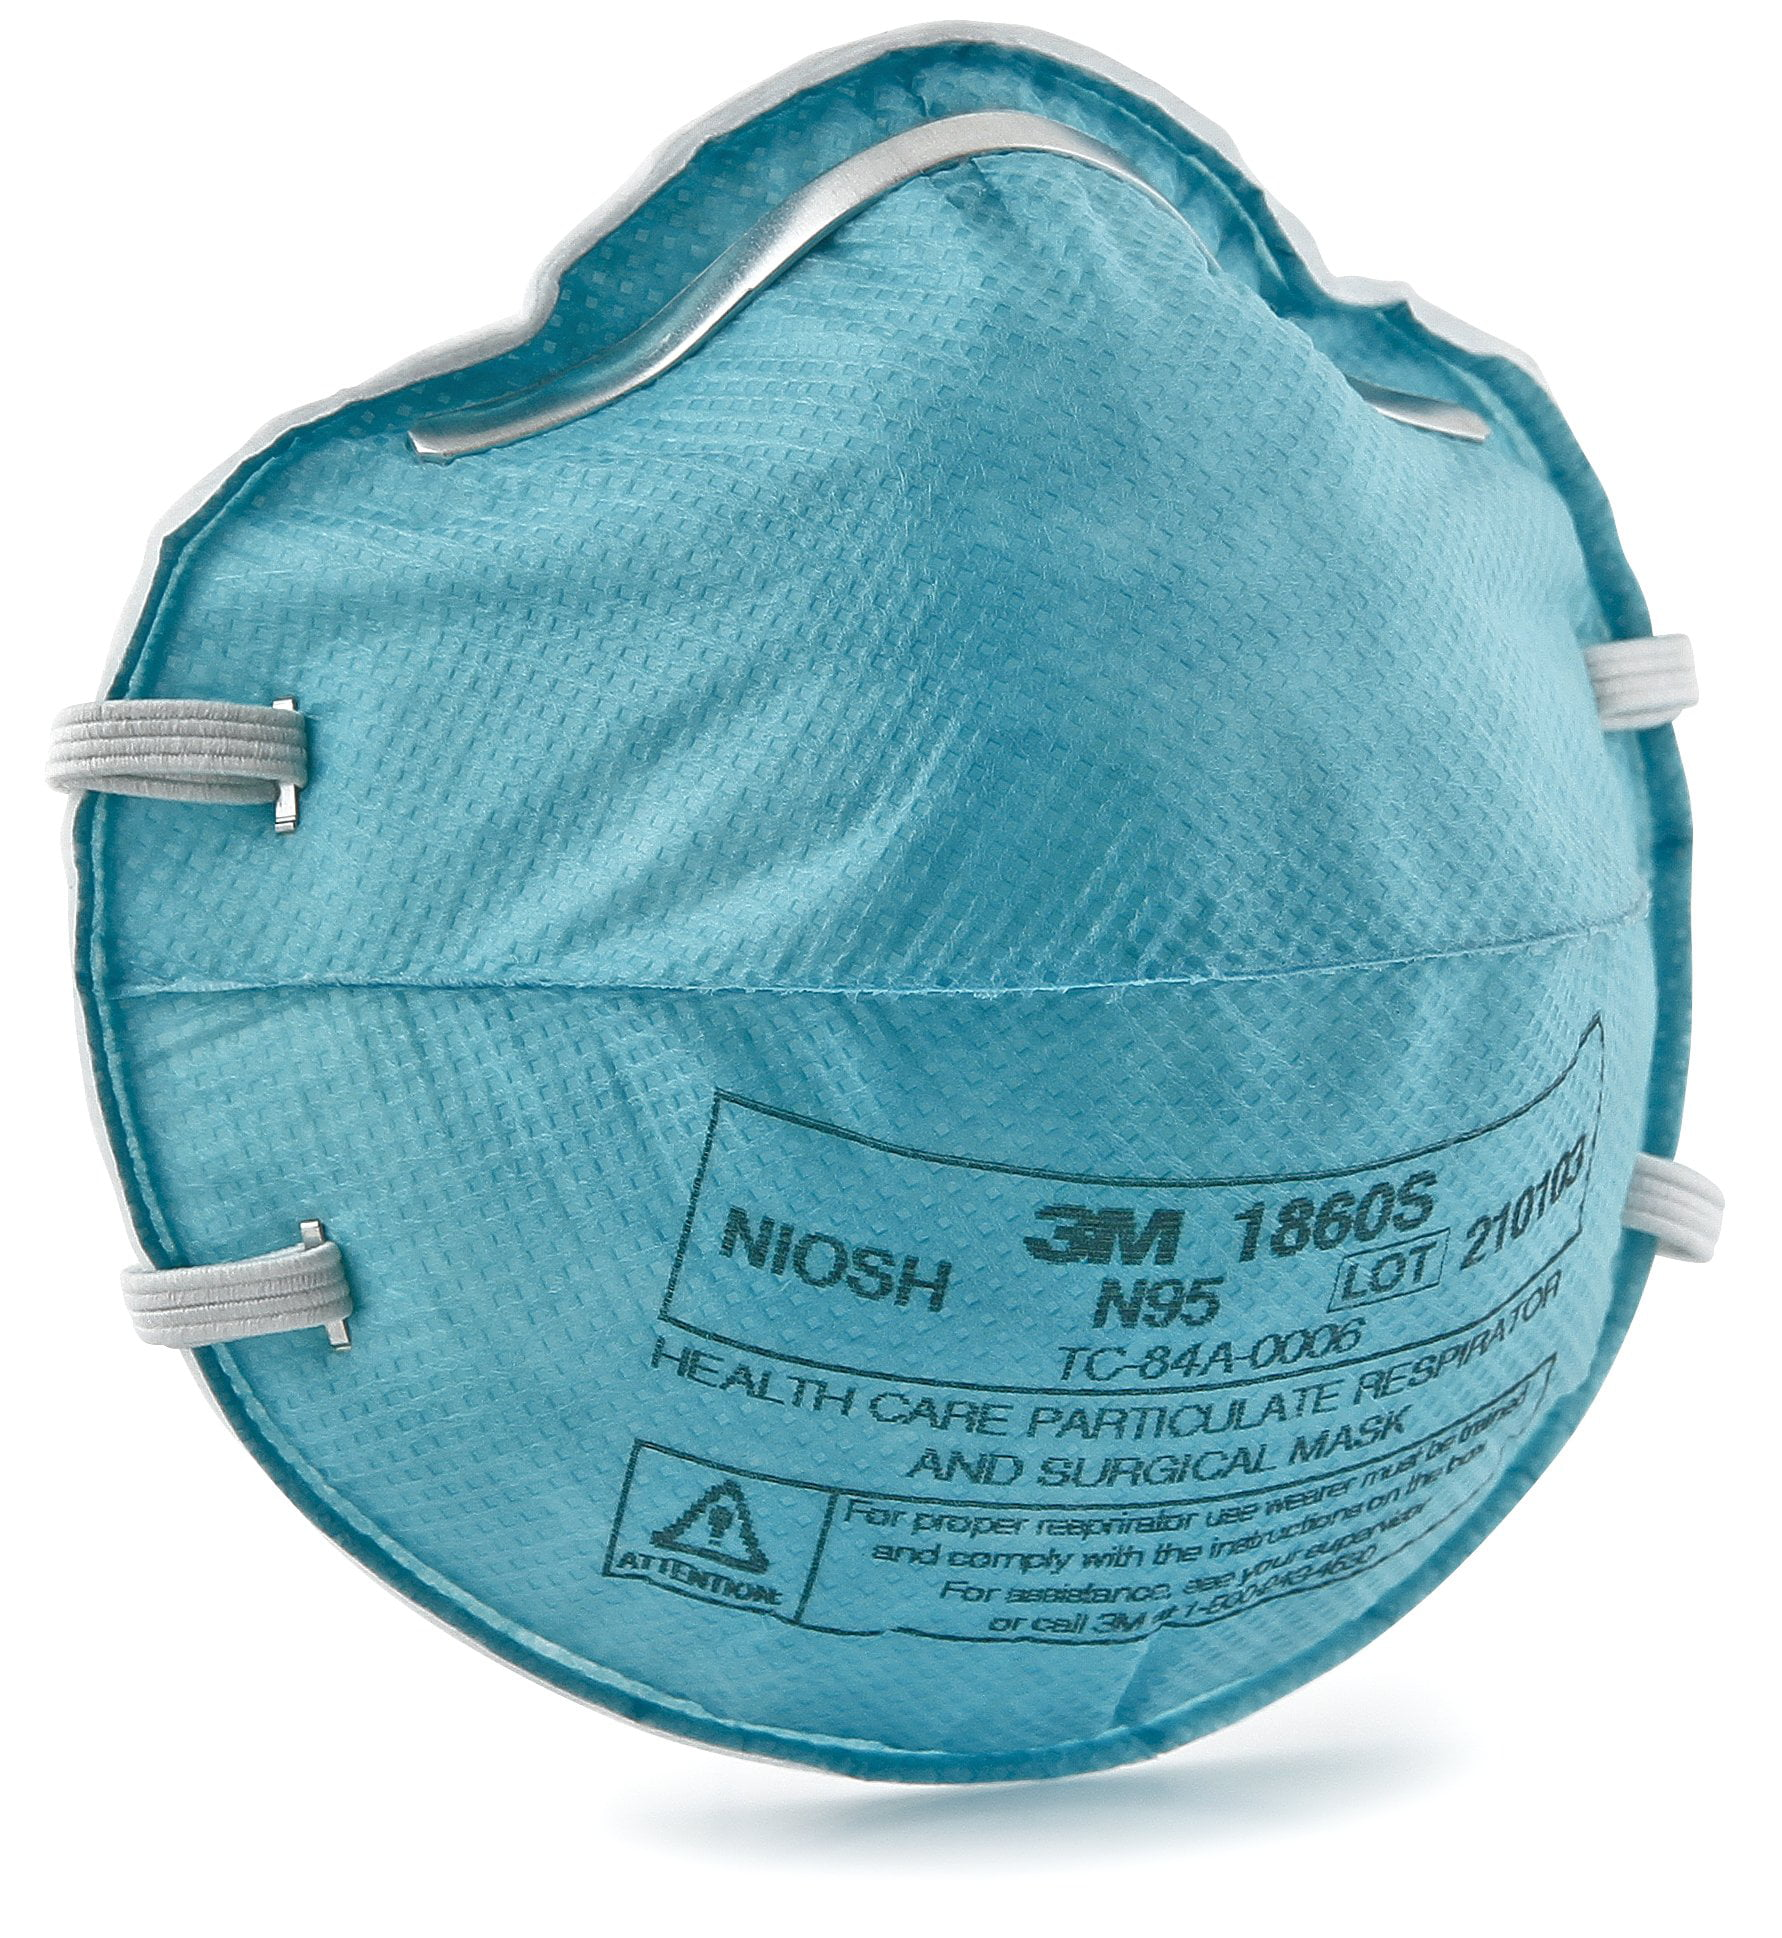 Surgical - Blue Respirator com Walmart 3m 1860s Case Cup Of Small N95 Particulate 120 Earloops Mask